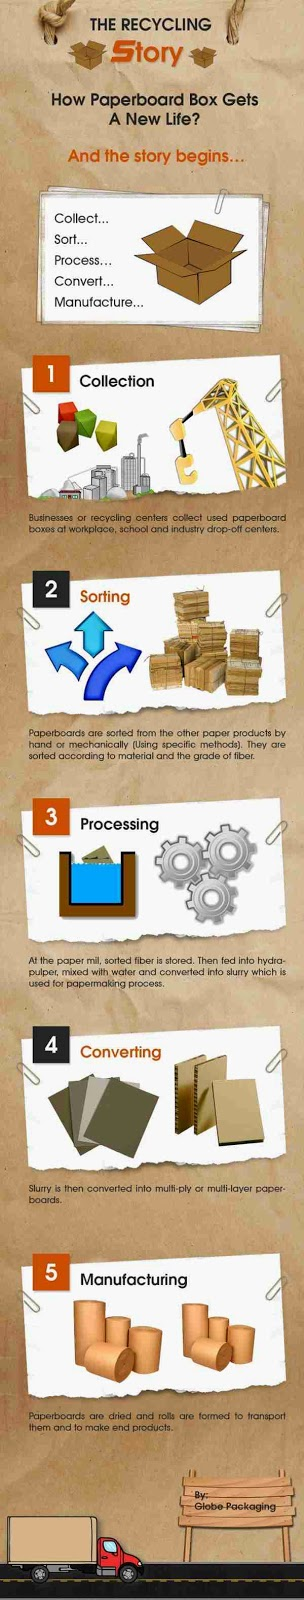 Paperboard Recycling Process Infographic